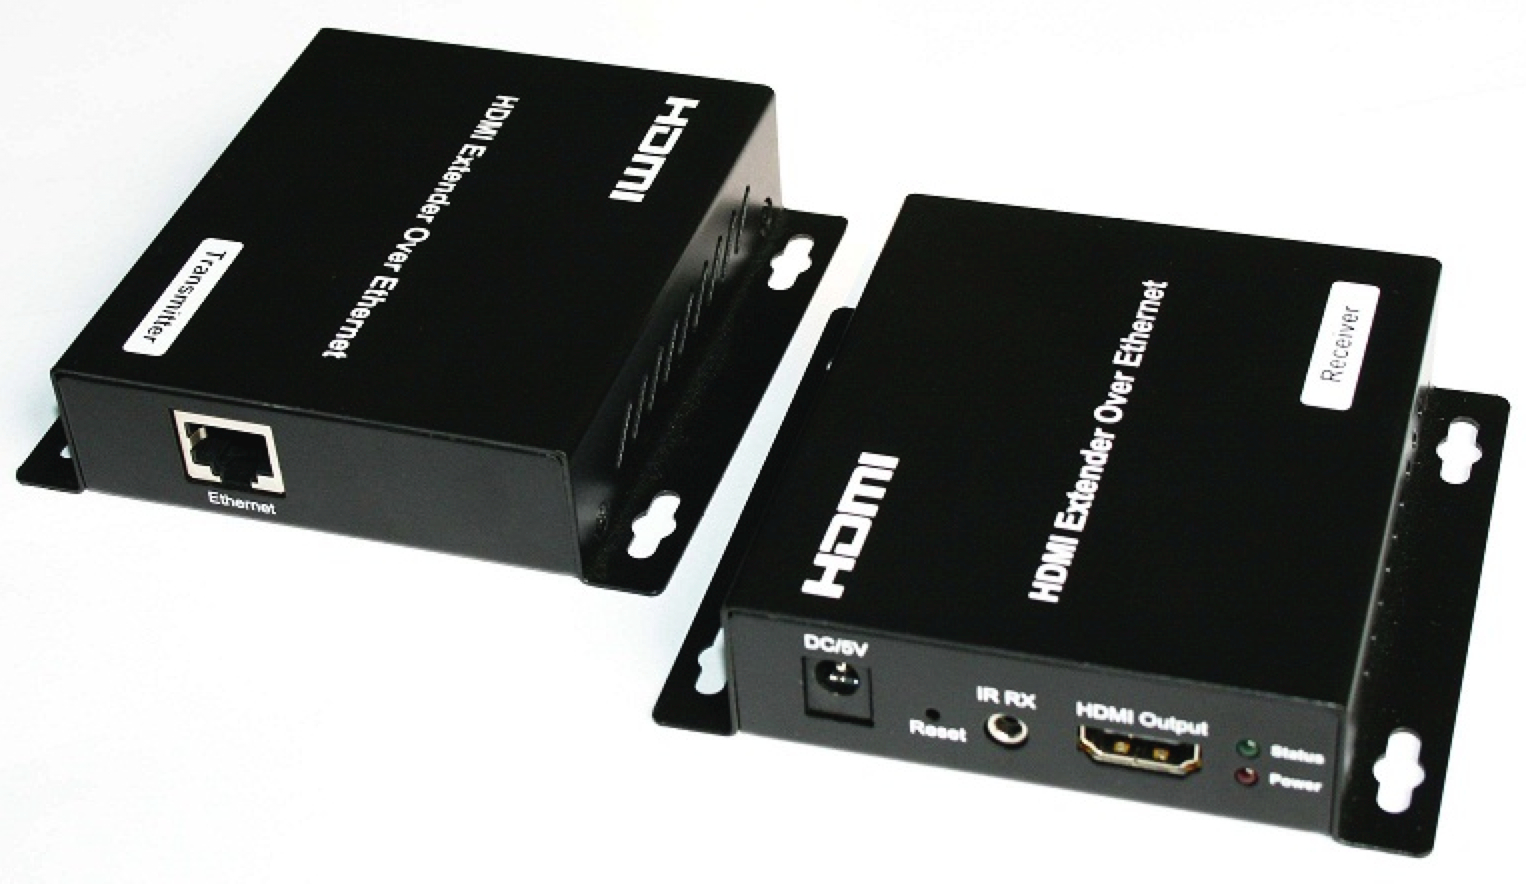 WolfPack 9x9 Network HDMI Matrix Switch Over CAT5 To 300 Feet - Preconfigured